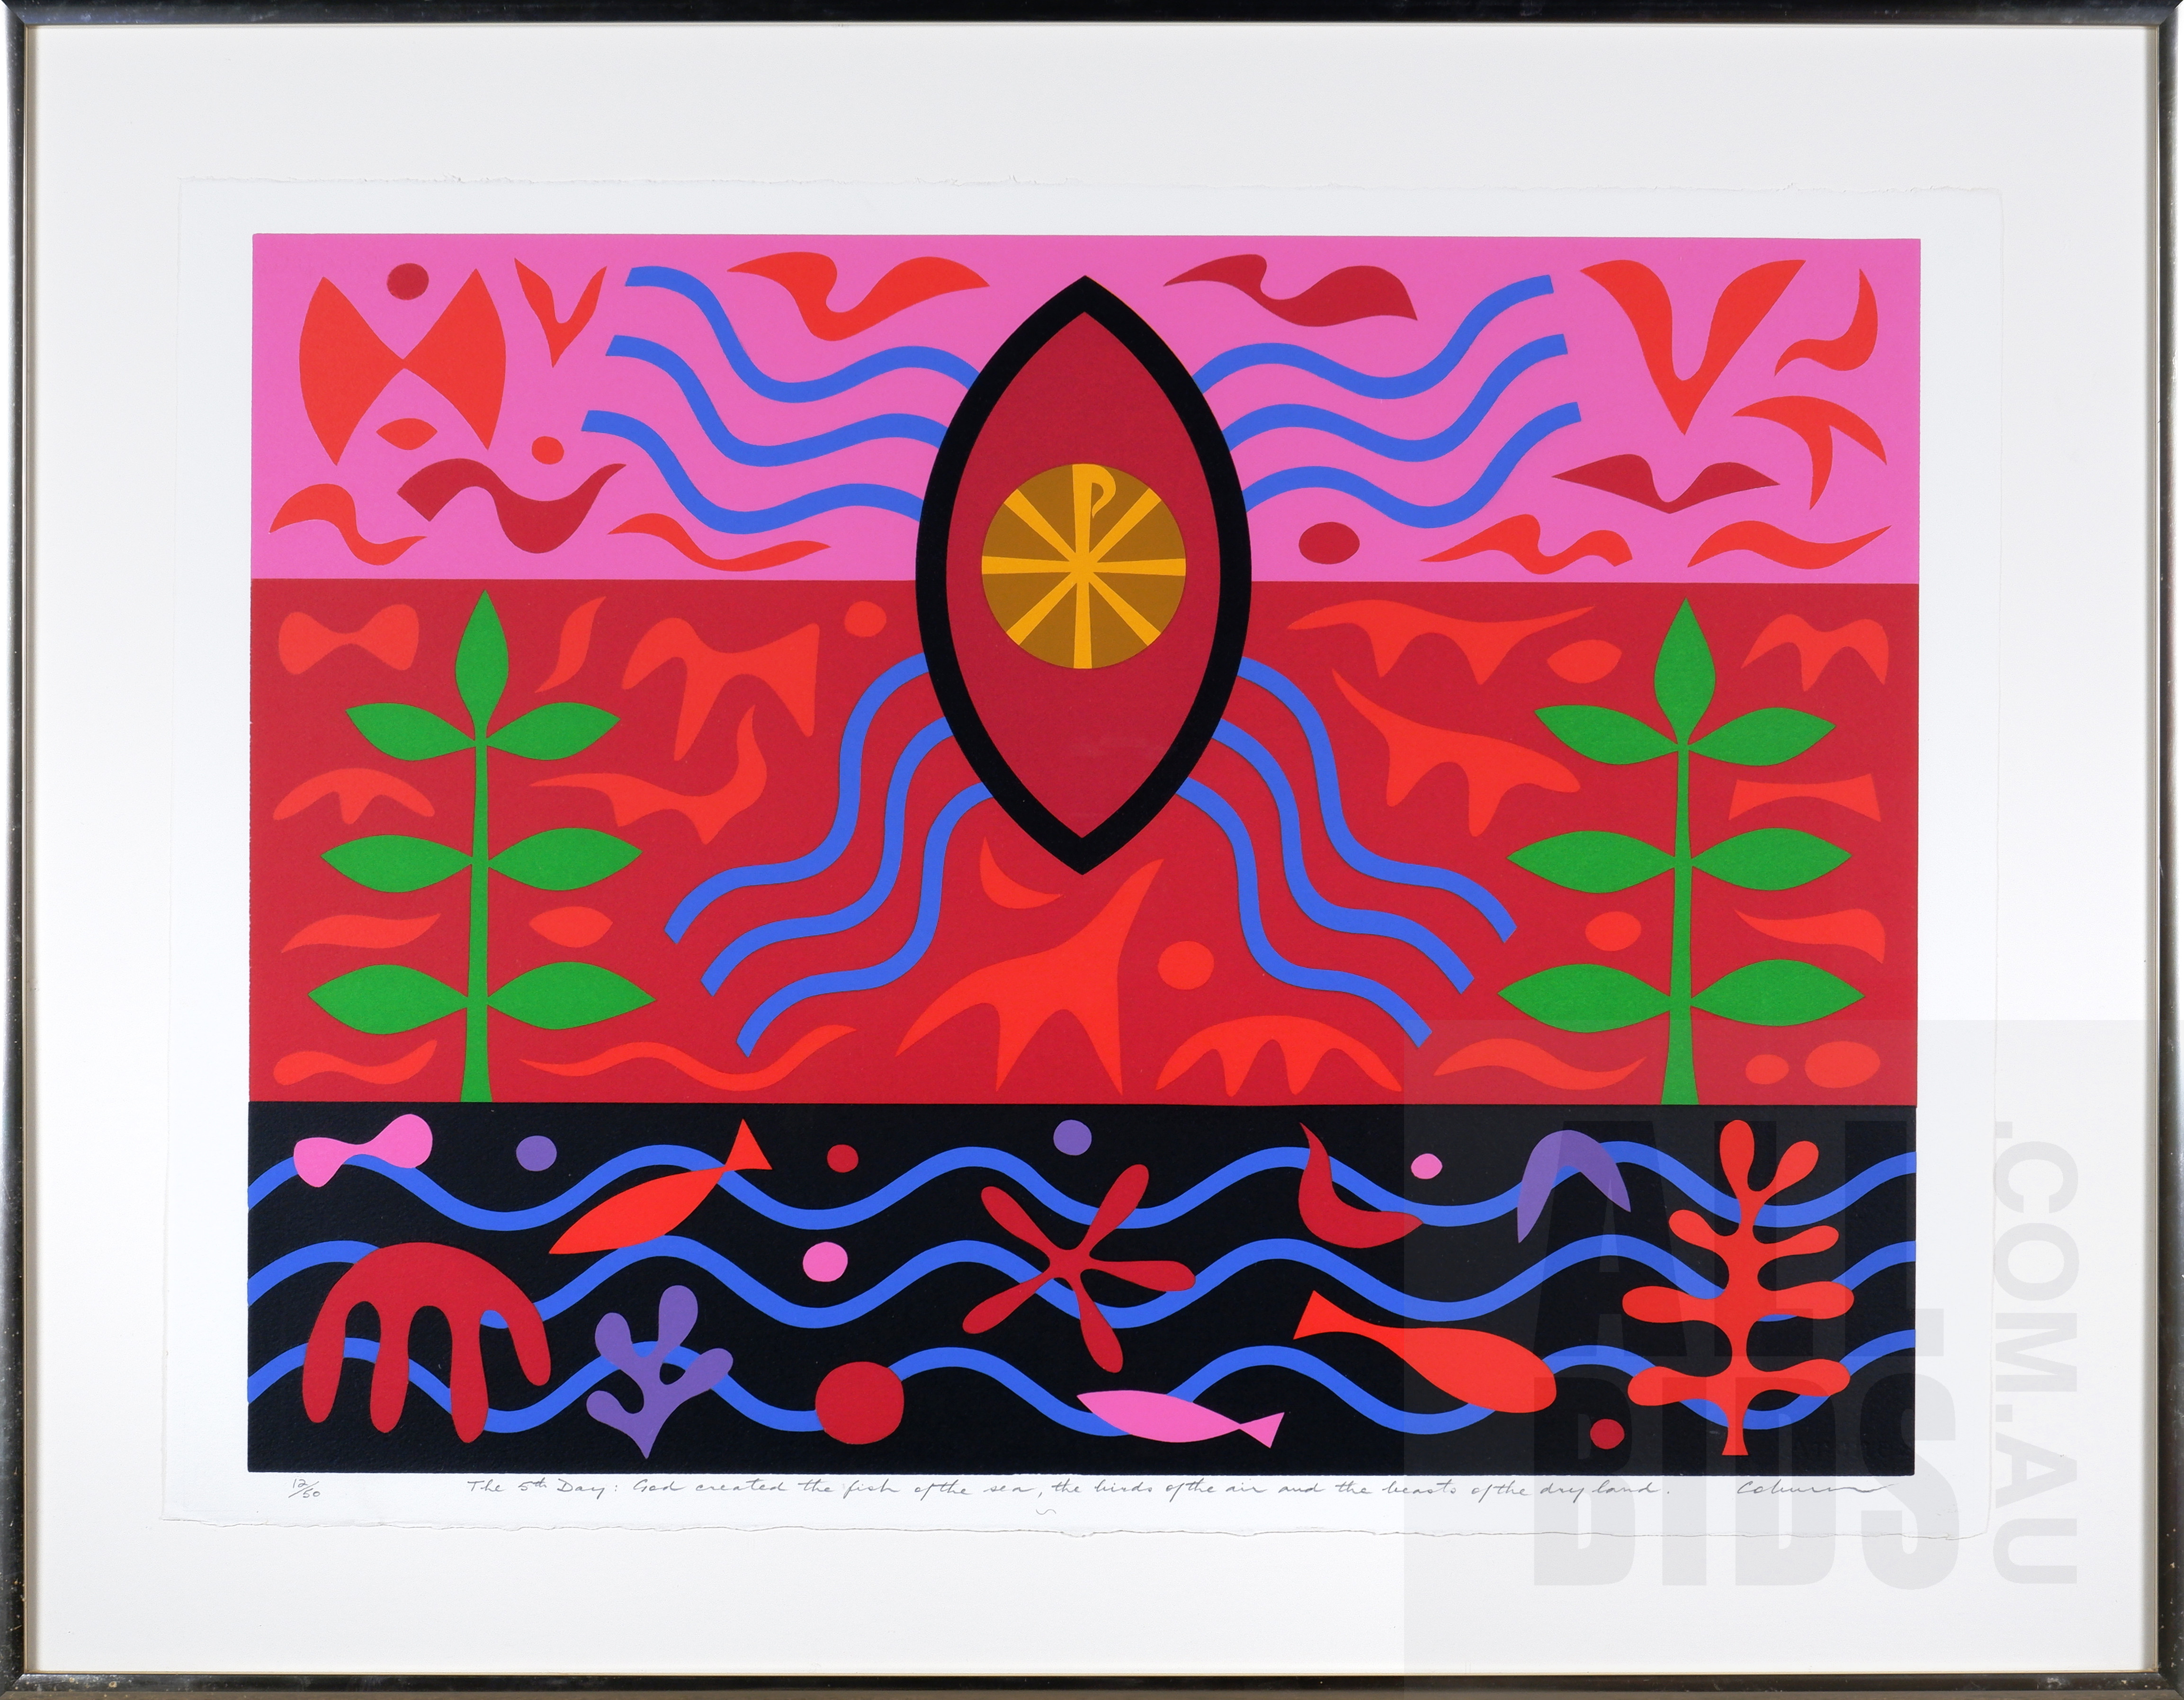 'John Coburn (1931-1986), The 5th Day: God Created the Fish of the Sea and the Birds of the Air and the Beasts of the Land 1977, Screenprint, 52 x 70 cm (image size) '